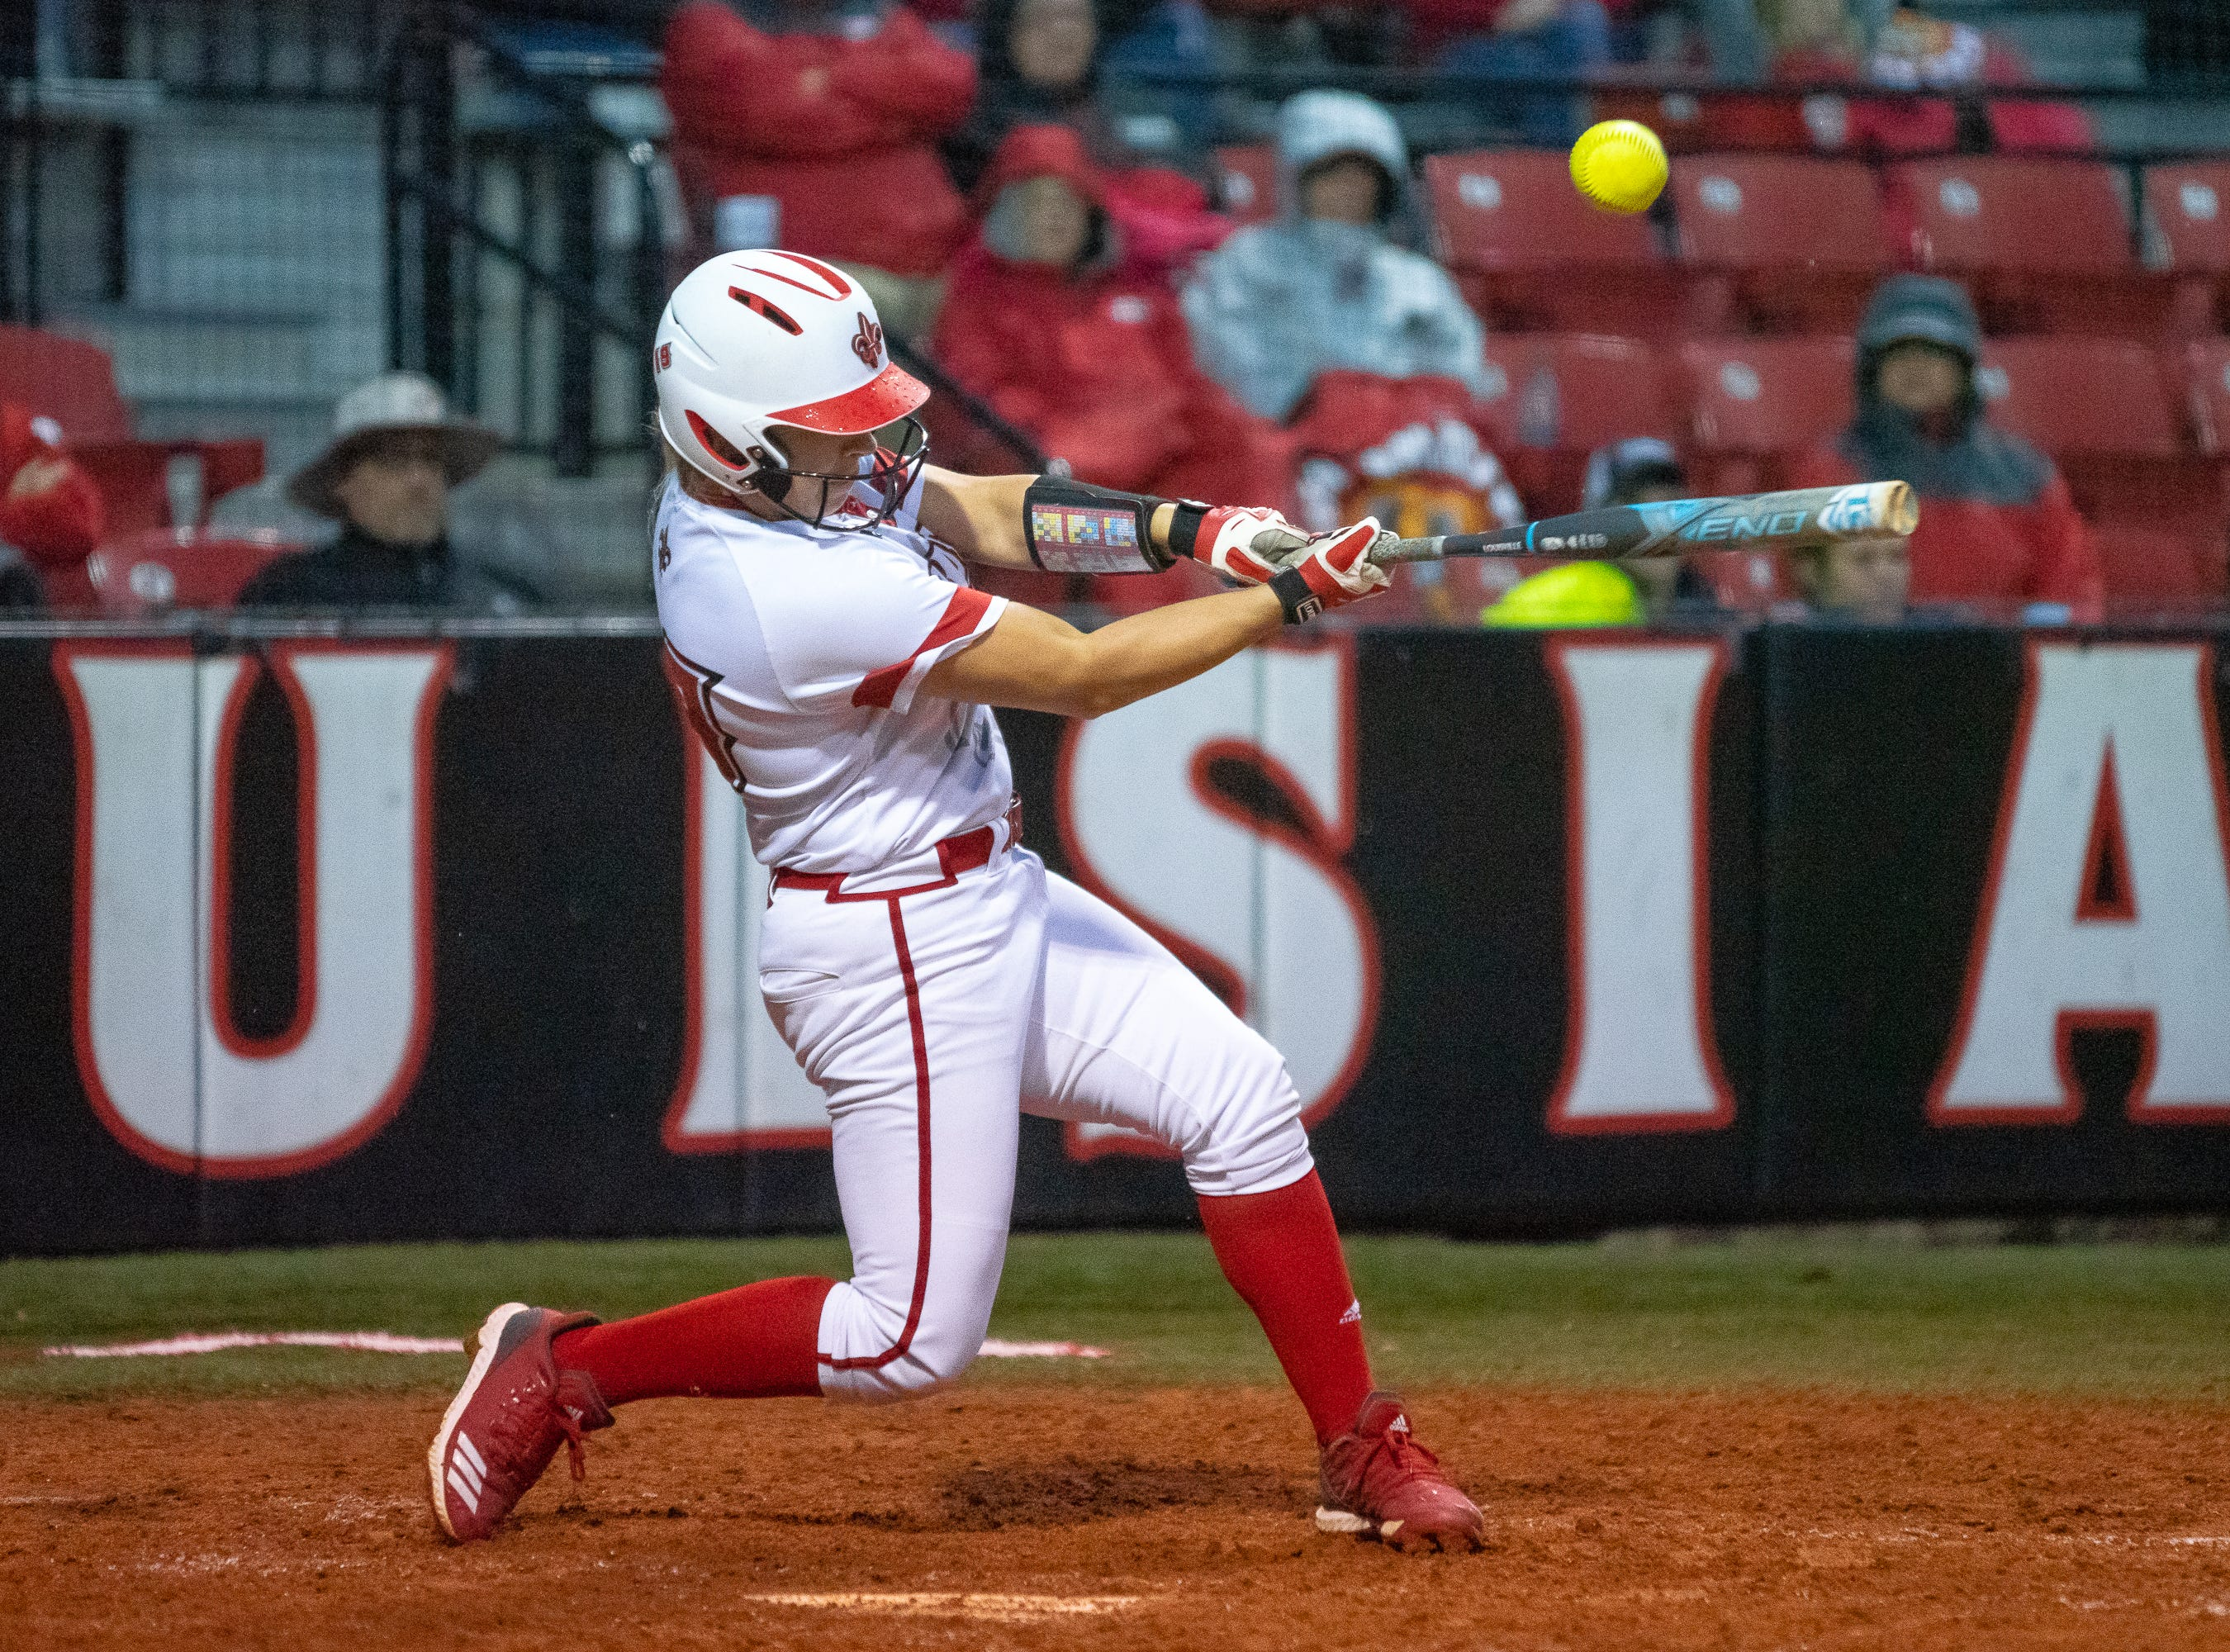 UL's Lexie Comeaux makes contact with the pitch as the Ragin' Cajuns take on the Troy Trojans at Lamson Park, Yvette Girouard Field on Friday, March 15, 2019.